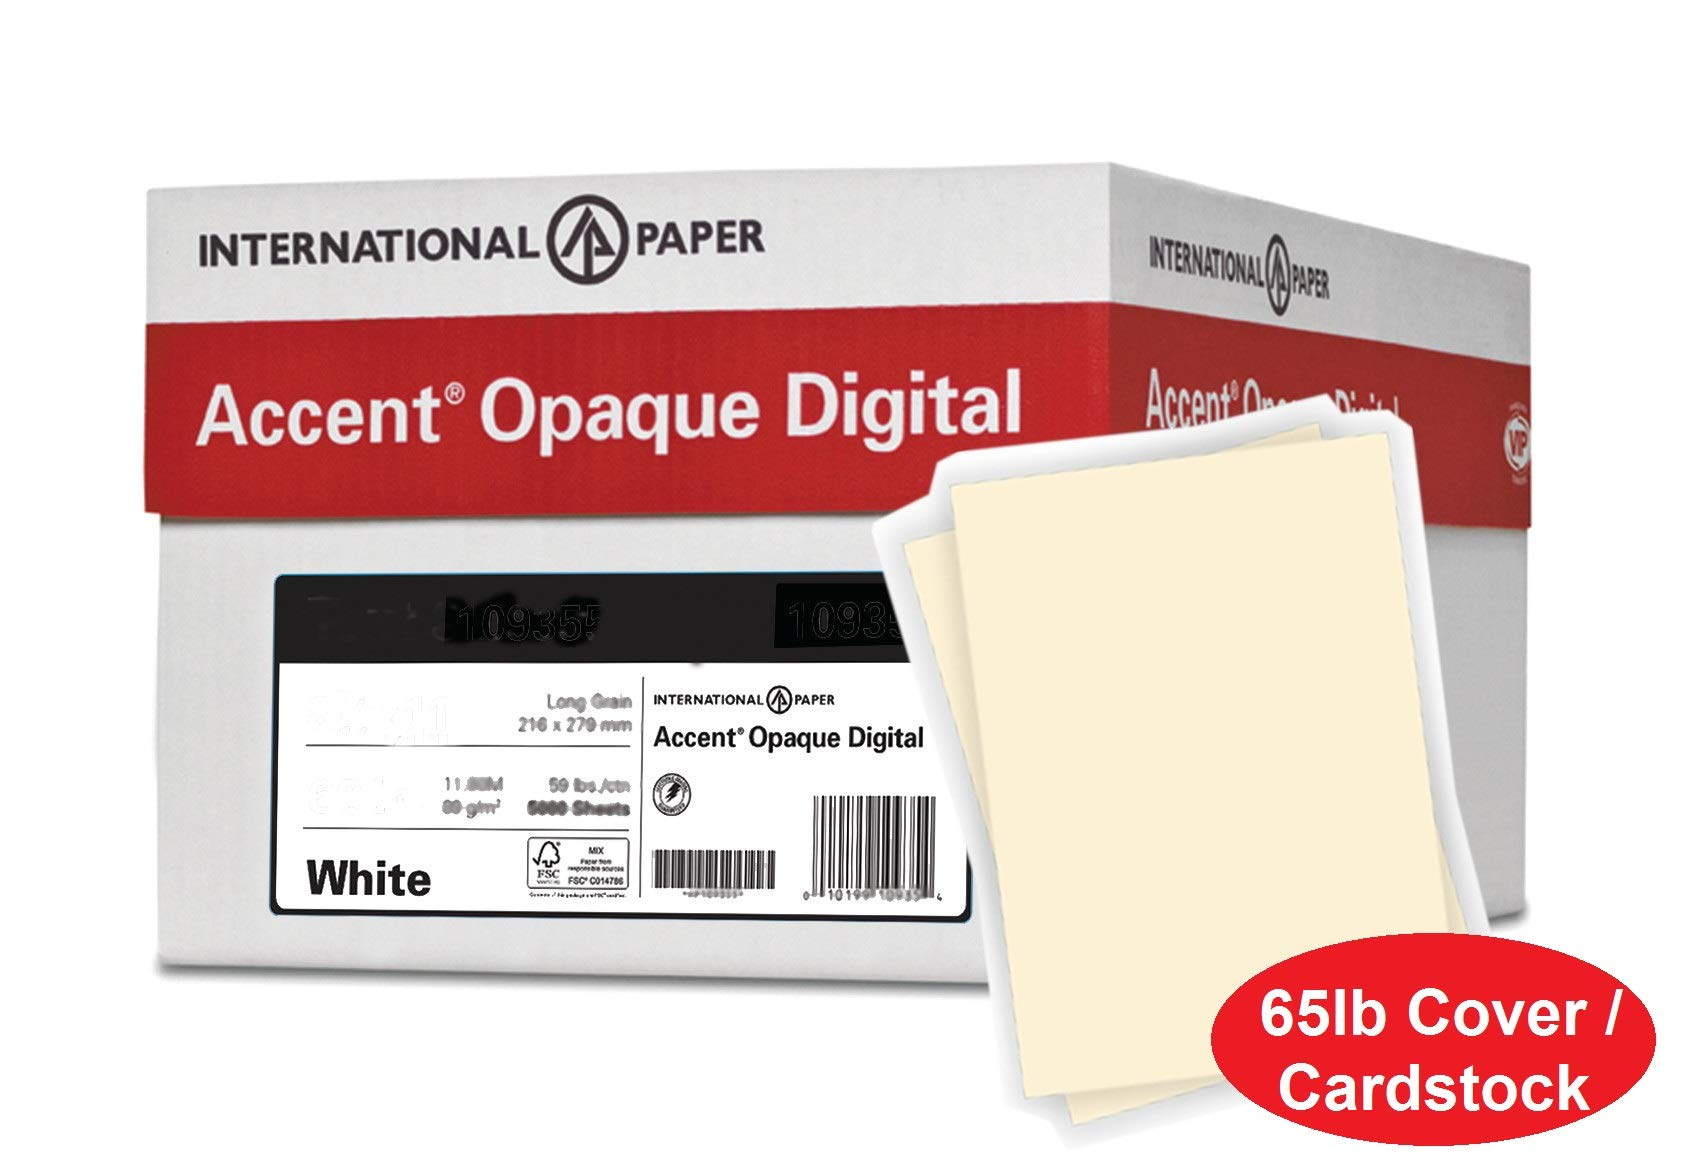 Accent Opaque Thick Cardstock Paper, Warm White Paper, 65lb Cover, 176 gsm, Letter Size, 8.5 x 11 Paper, 97 Bright, 10 Ream Case / 2,500 Sheets, Super Smooth, Heavy Card Stock (121972C) by Accent